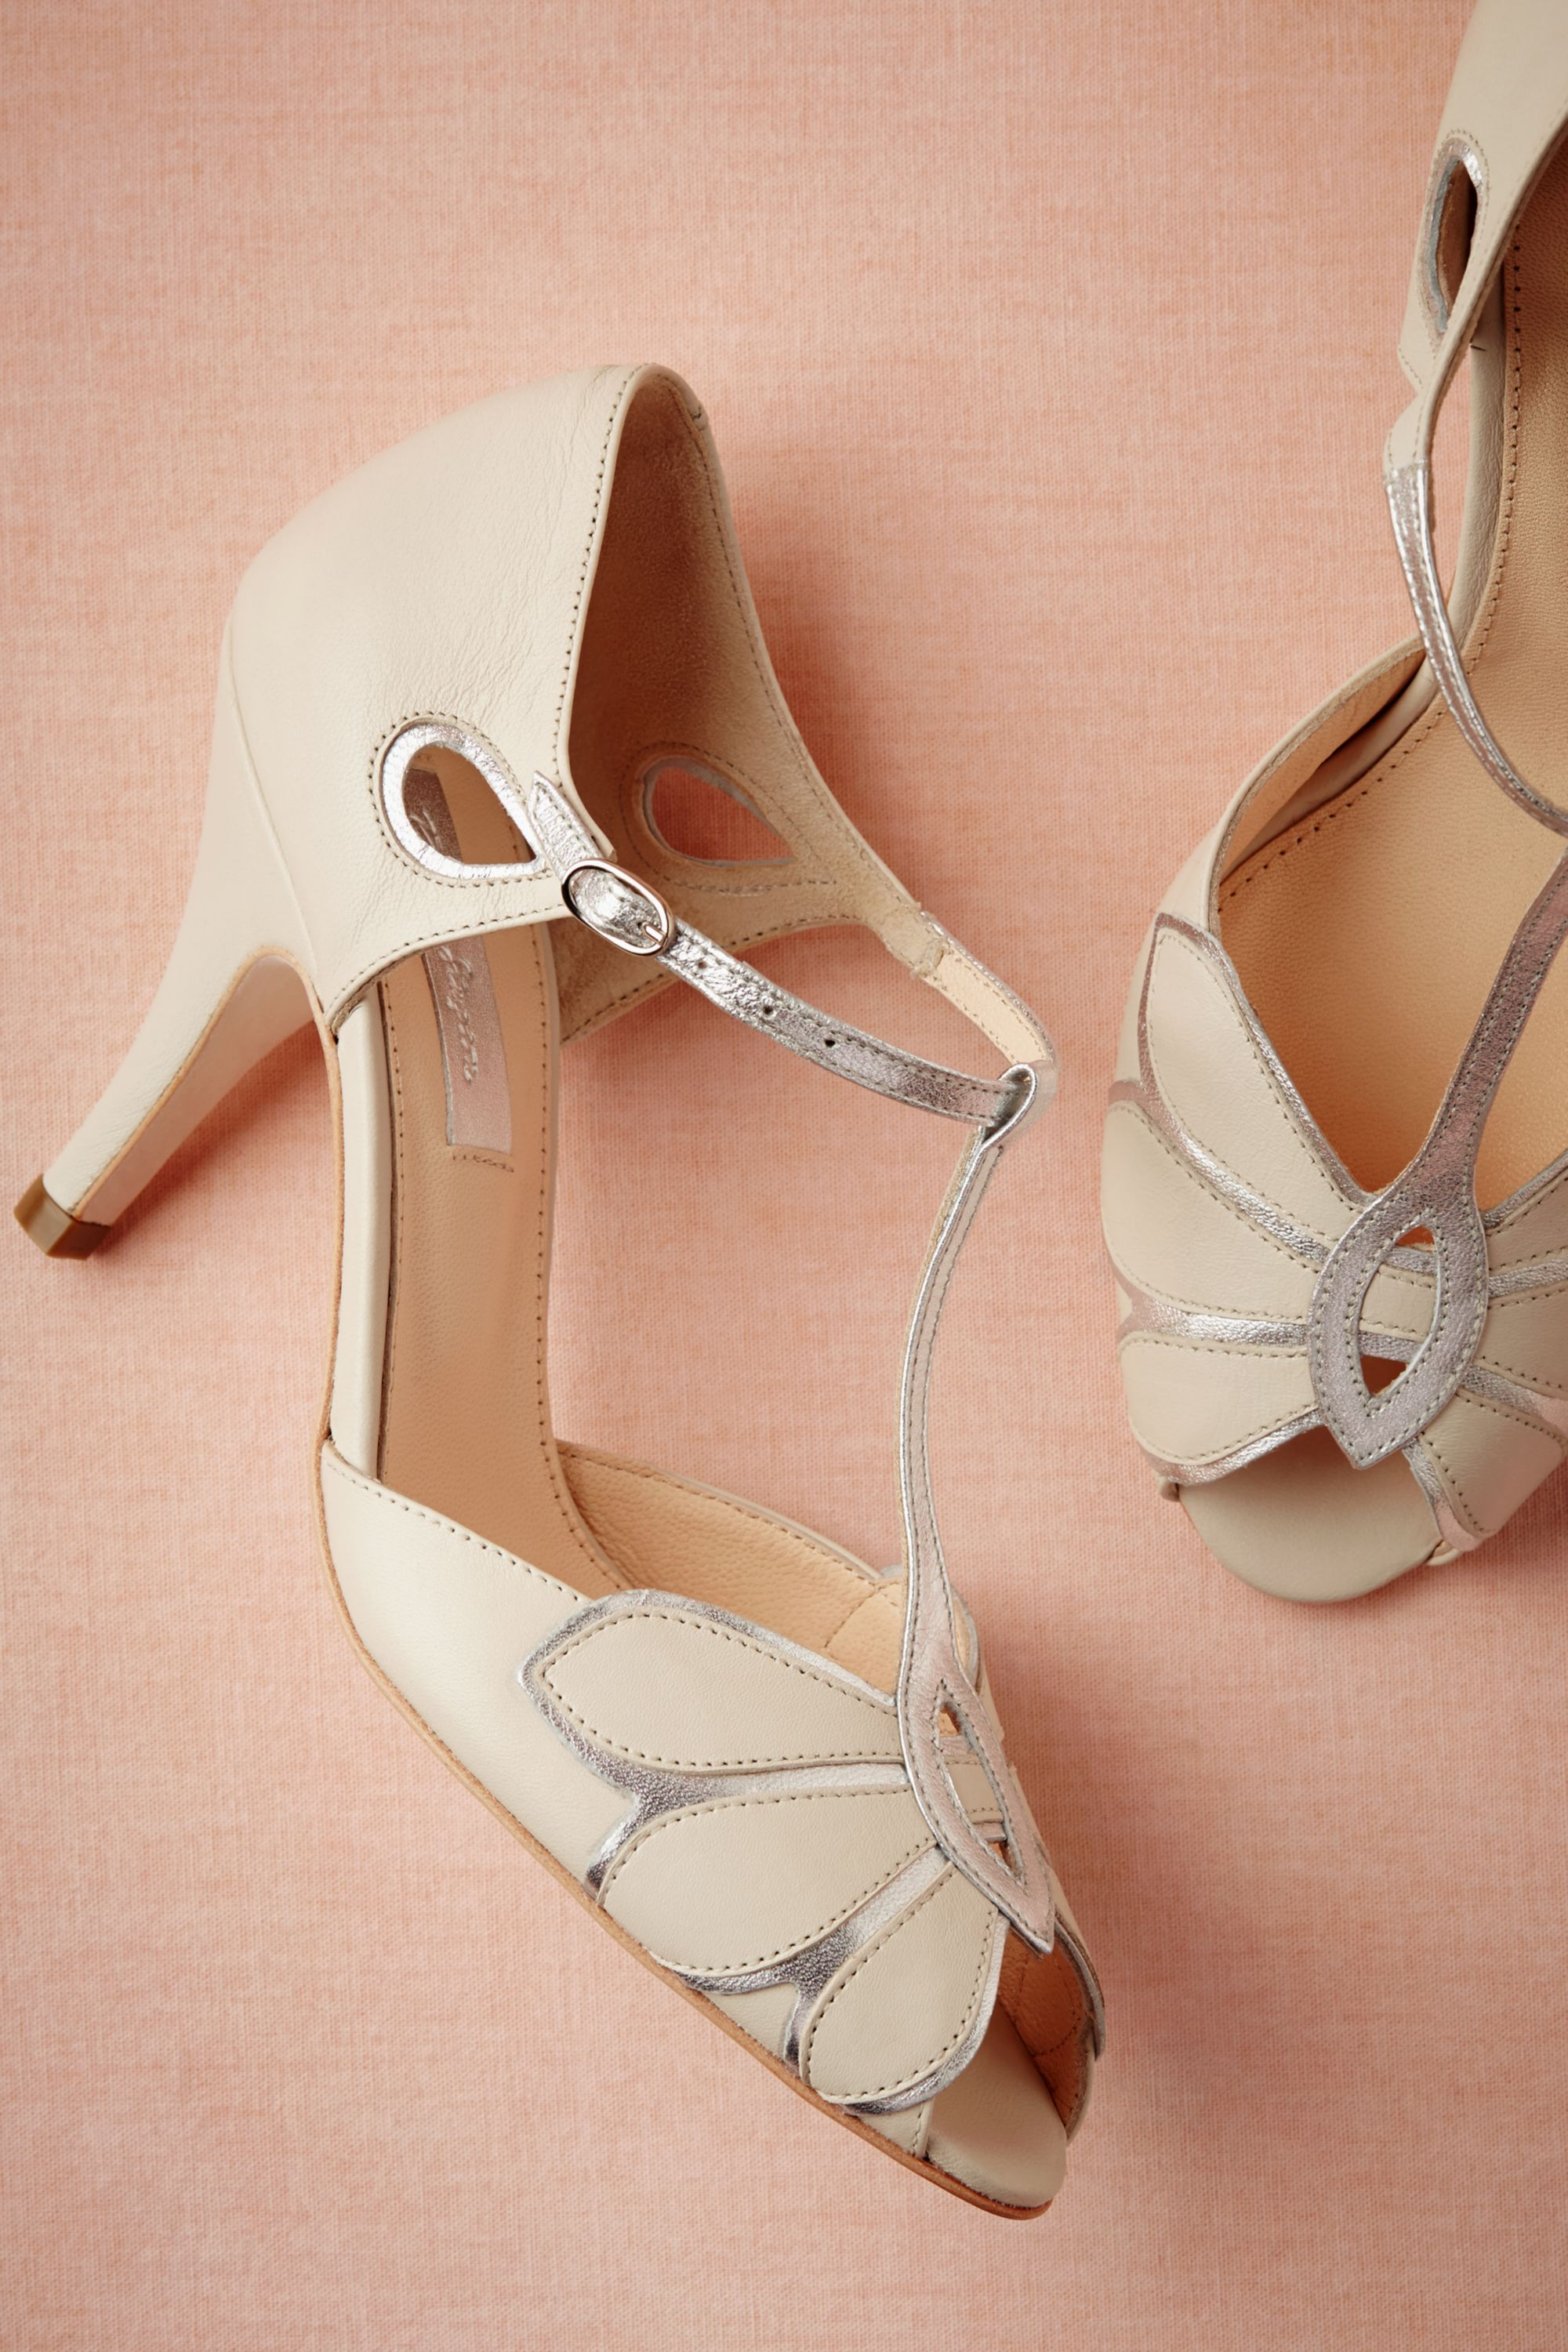 b9d0b335a9f Rachel Simpson Mimosa T-Strap Heels ivory in Shoes   Accessories